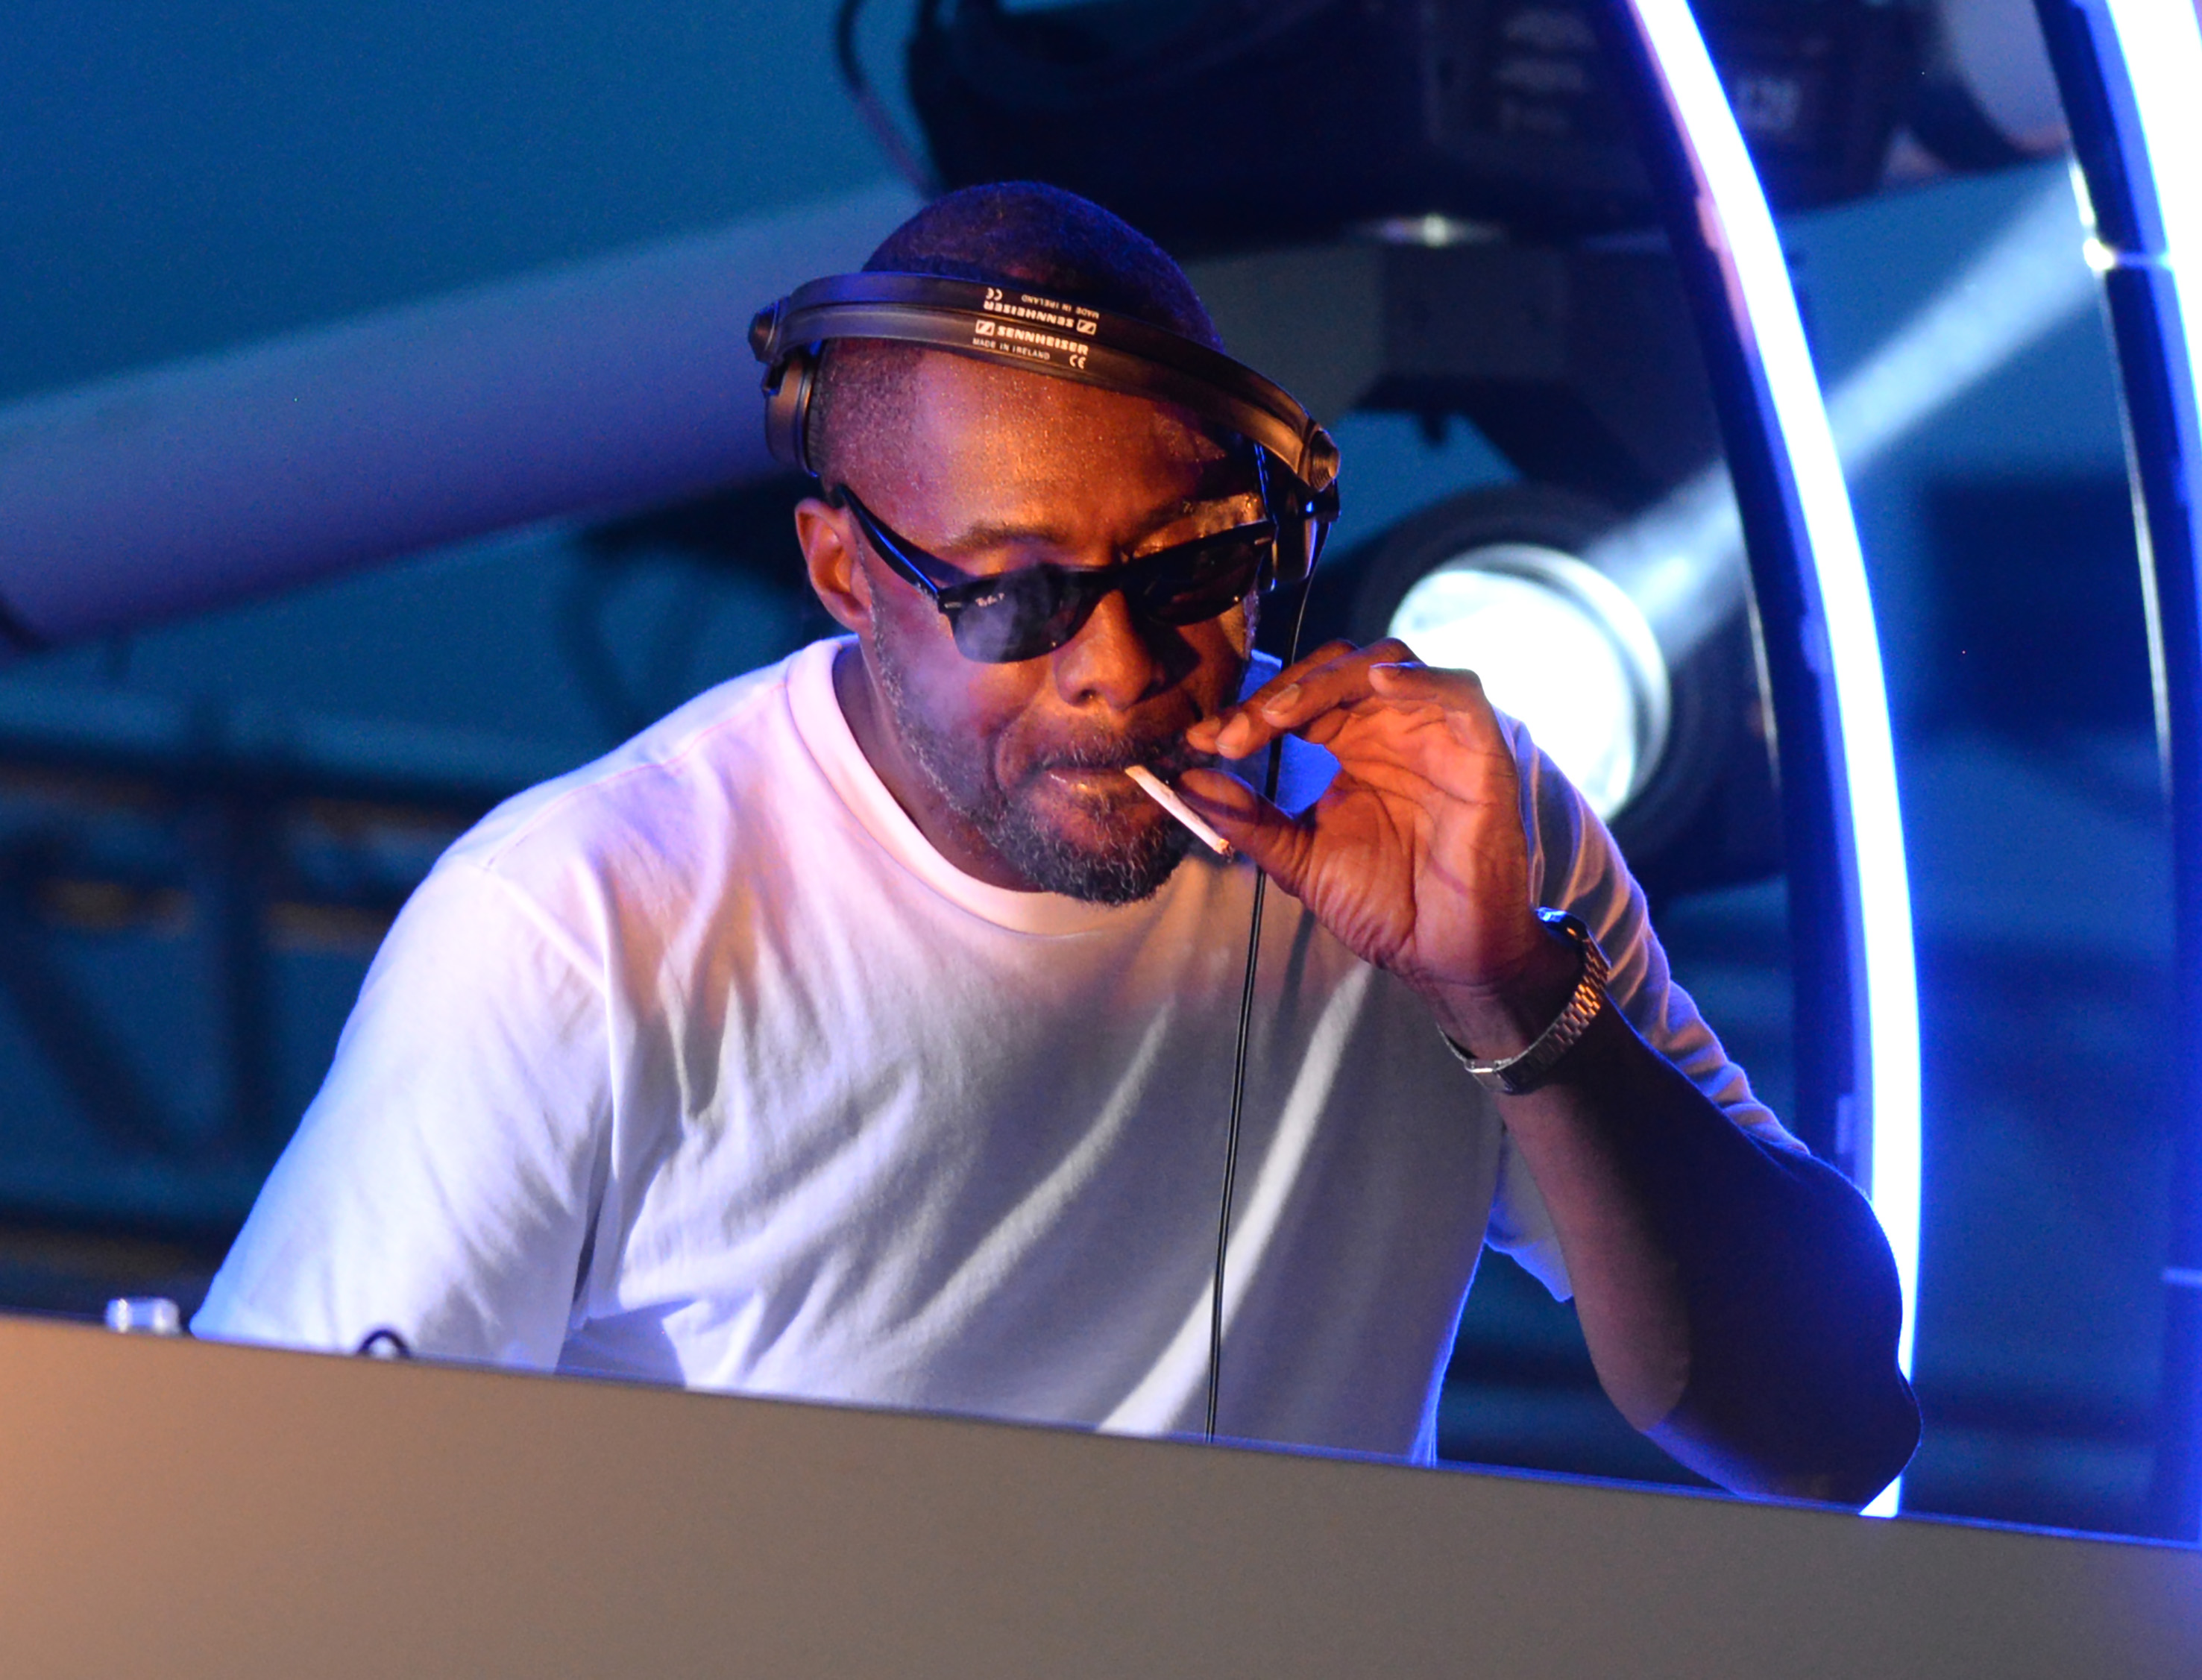 Idris Elba smokes a hand-rolled cigarette while playing a DJ set at the Goodwood Racecourse in West Sussex, at the last of their 'Three Friday Nights' events Featuring: Idris Elba Where: Chichester, West Sussex, United Kingdom When: 19 Jun 2015 Credit: Paul Jacobs/WENN.com